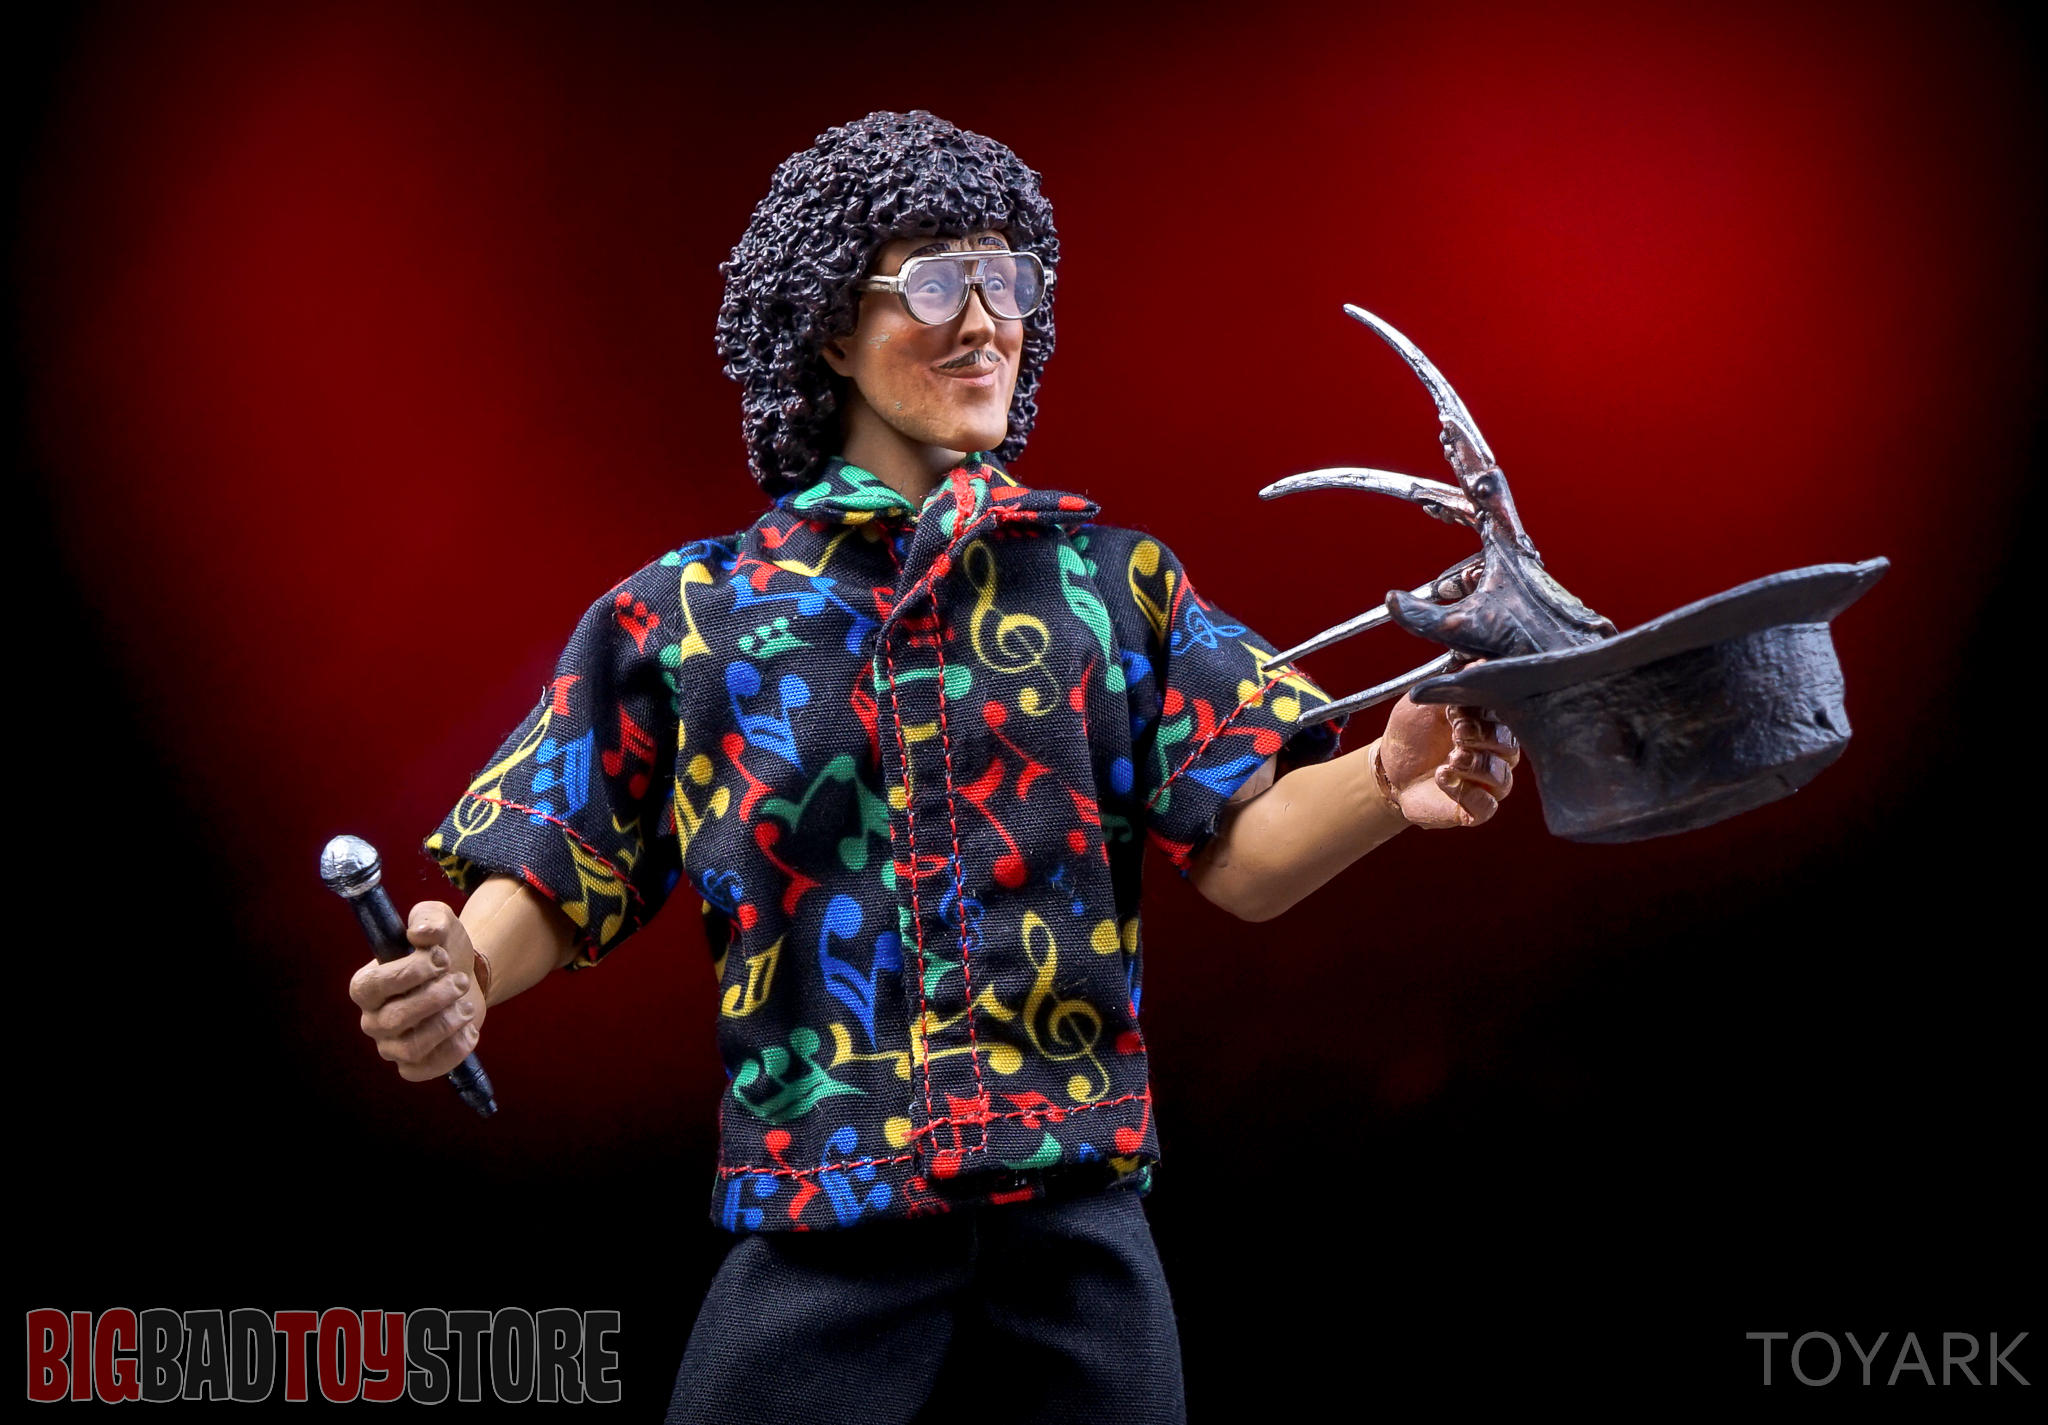 http://news.toyark.com/wp-content/uploads/sites/4/2016/06/NECA-Retro-Weird-Al-054.jpg